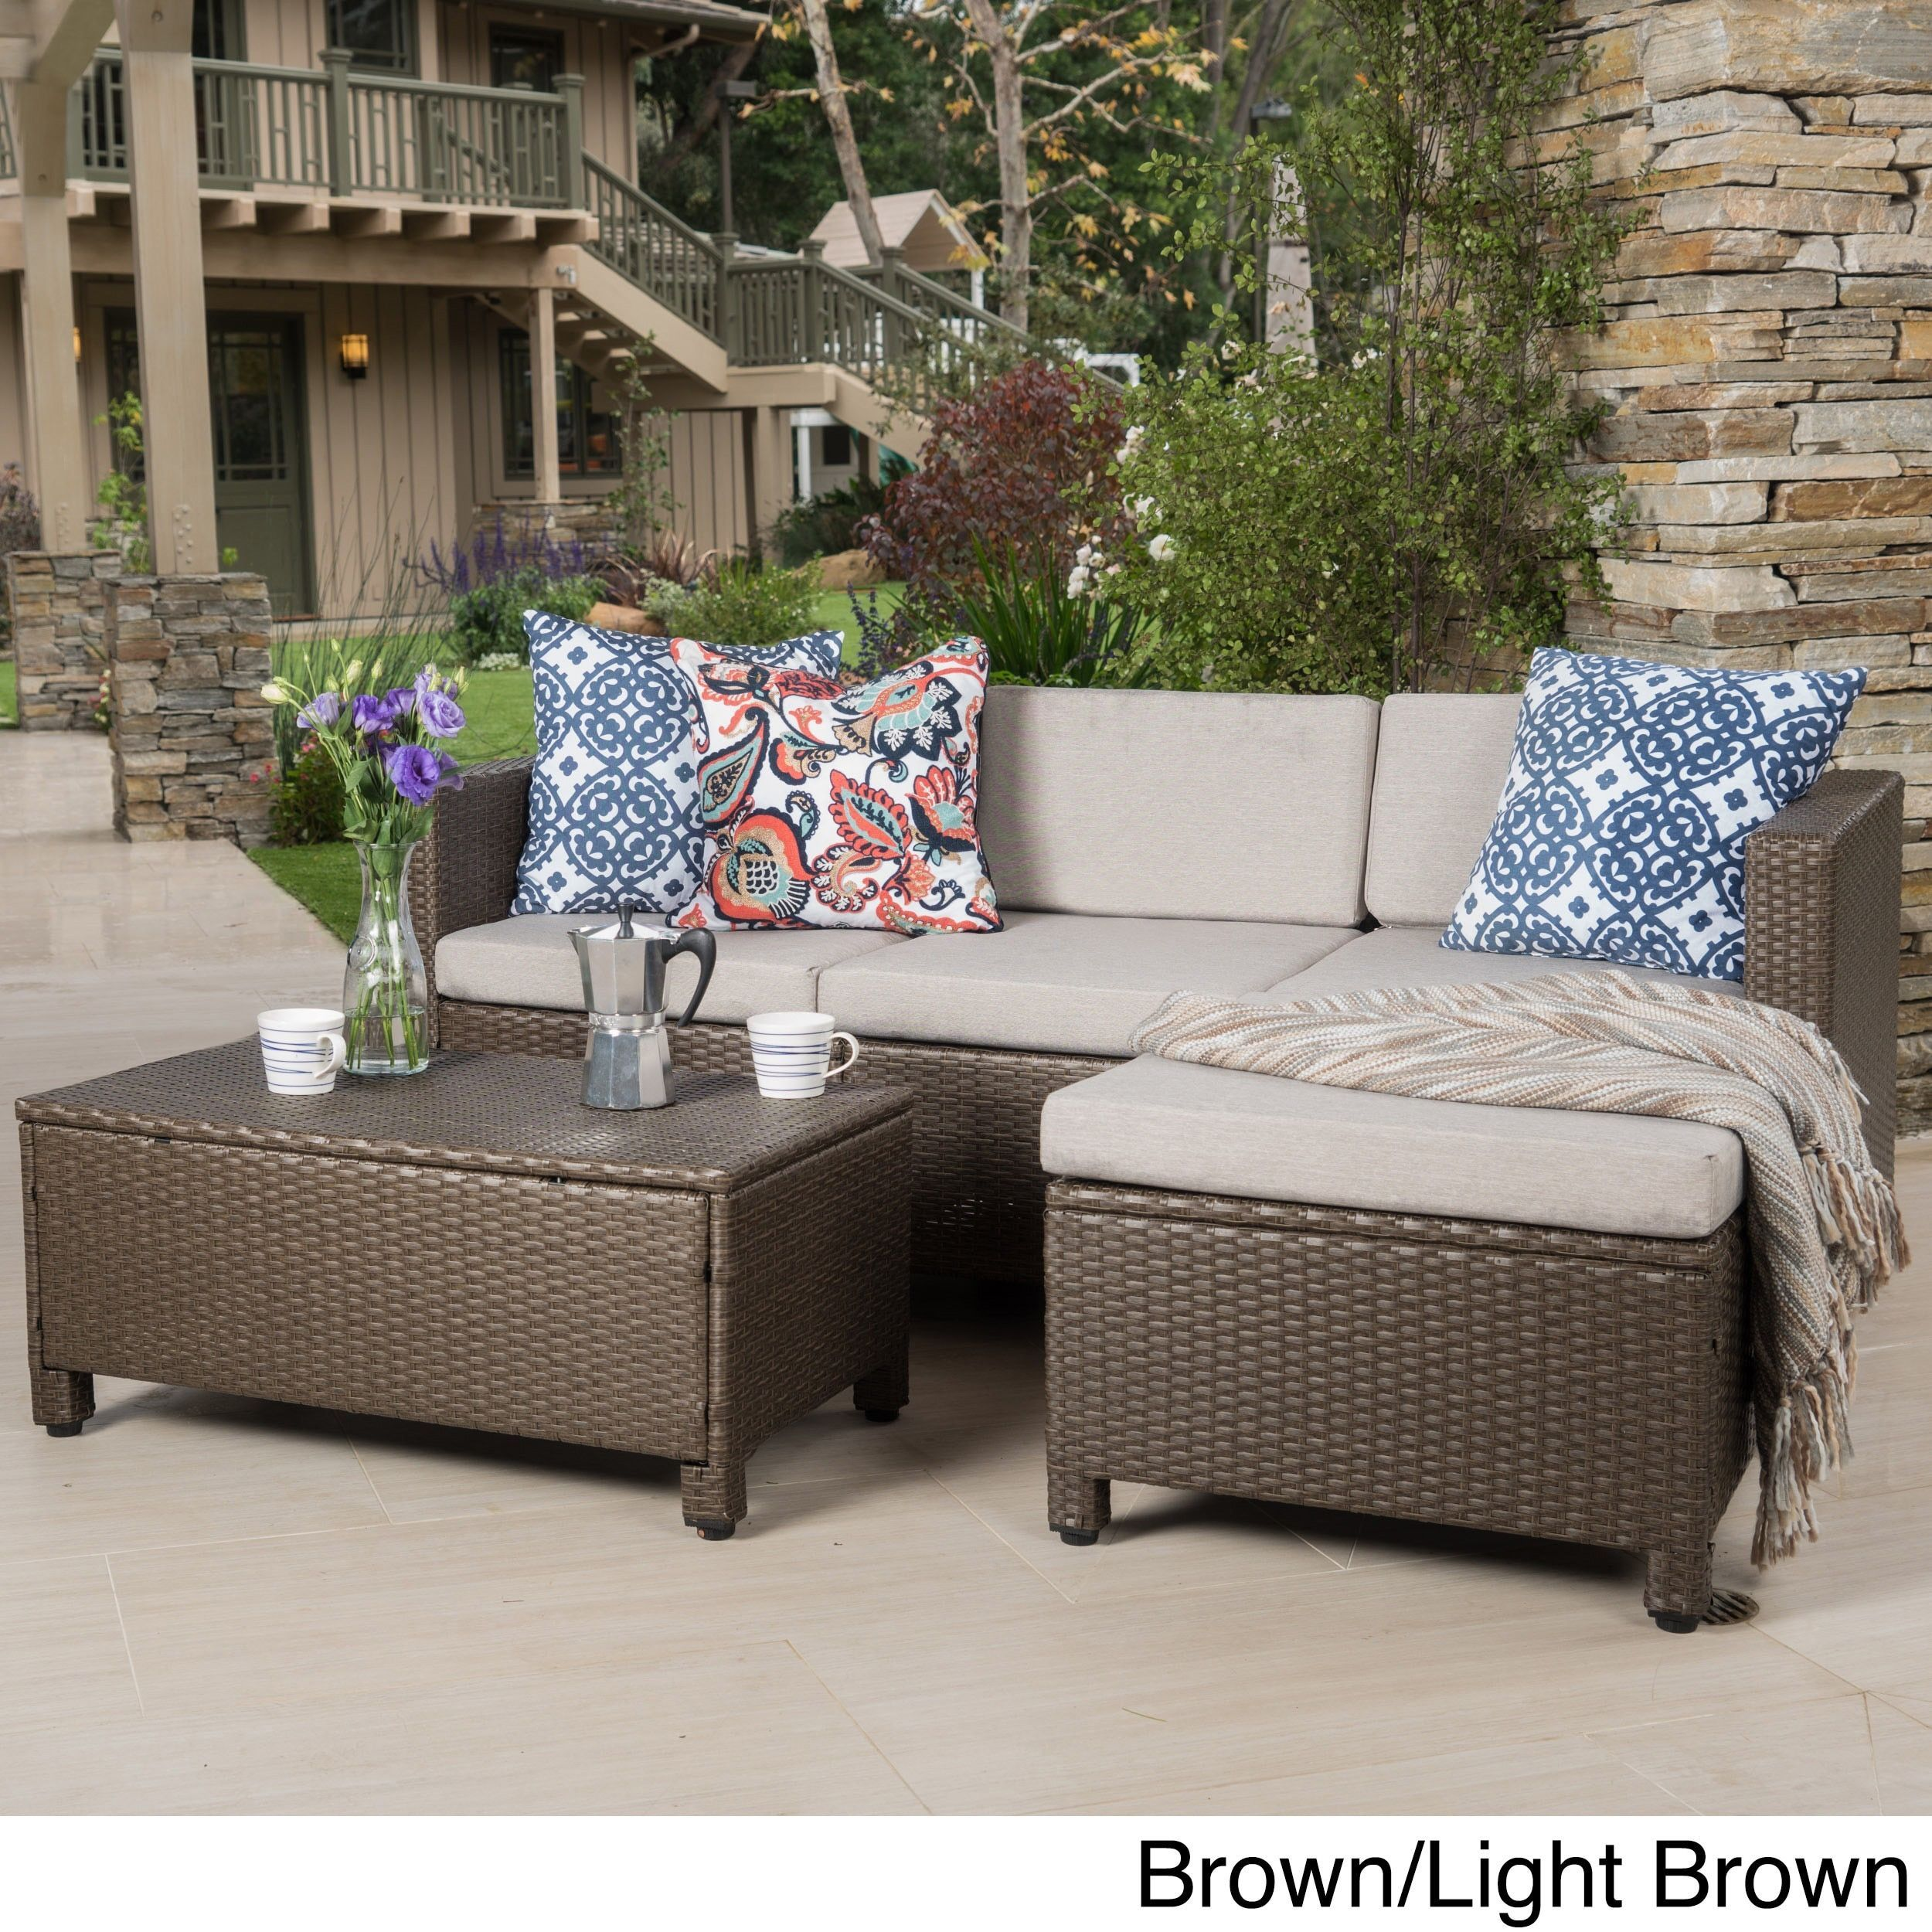 Outdoor Puerta 5 Piece Wicker L Shaped Sectional Sofa Set With